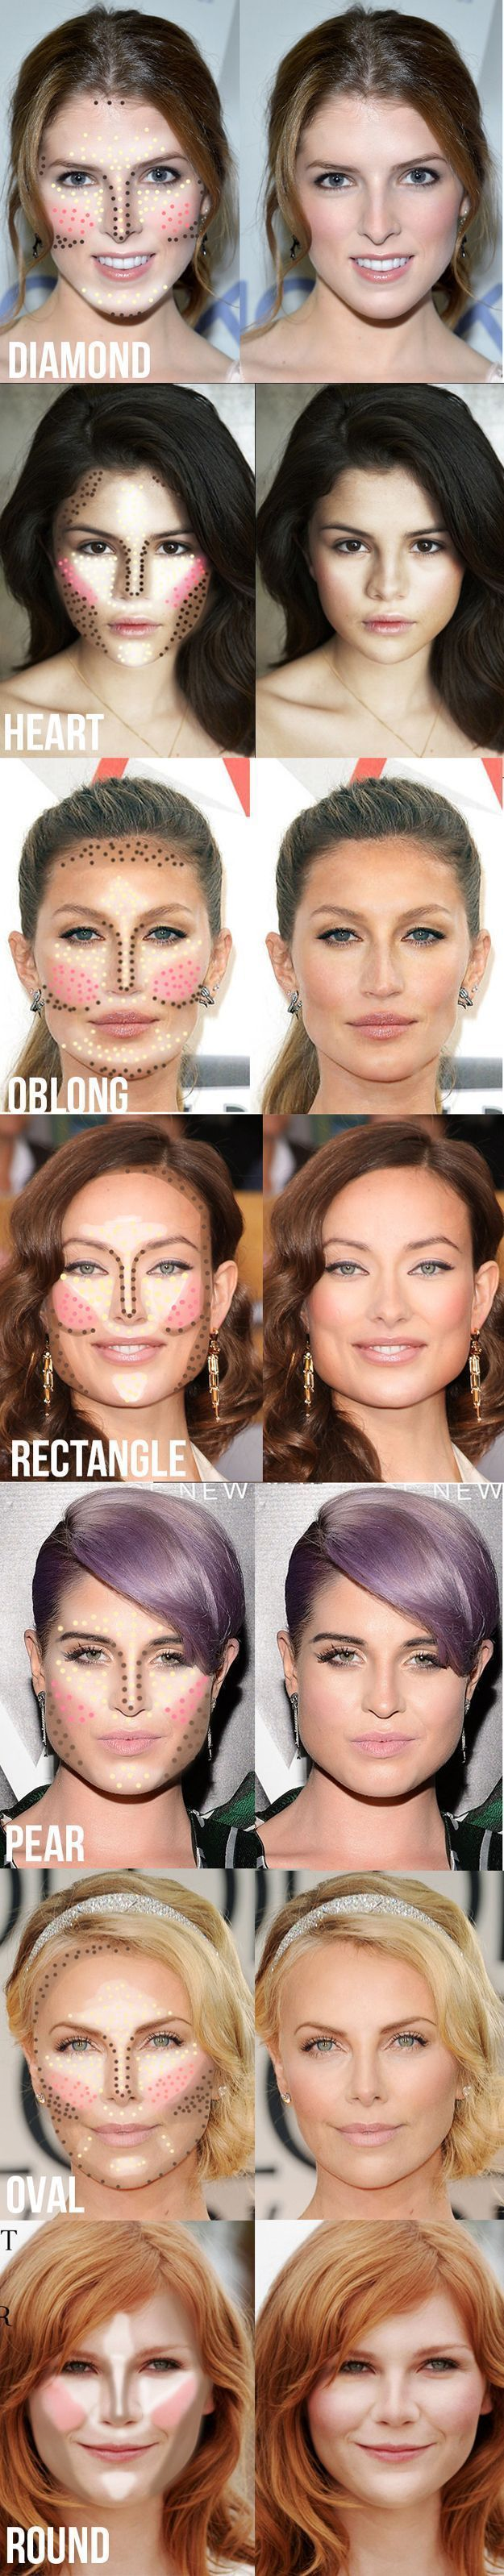 Contouring and Highlighting Tips for Your Face Shape | Easy Hacks & Step By Step Tutorials by Makeup Tutorials http://makeuptutorials.com/makeup-tutorials-beauty-tips